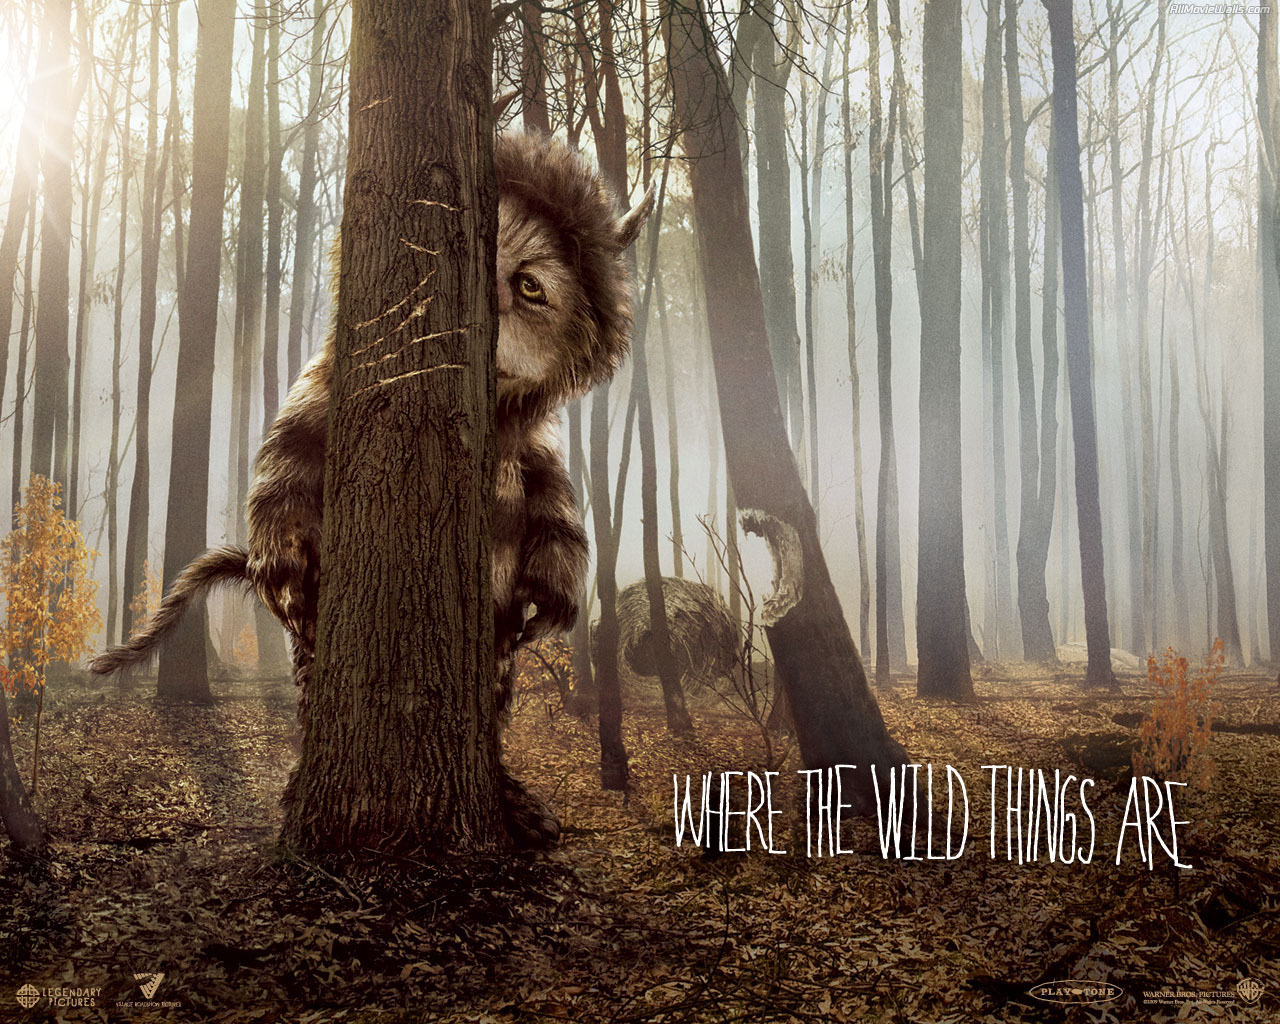 where the wild things are movies wallpaper 9133027